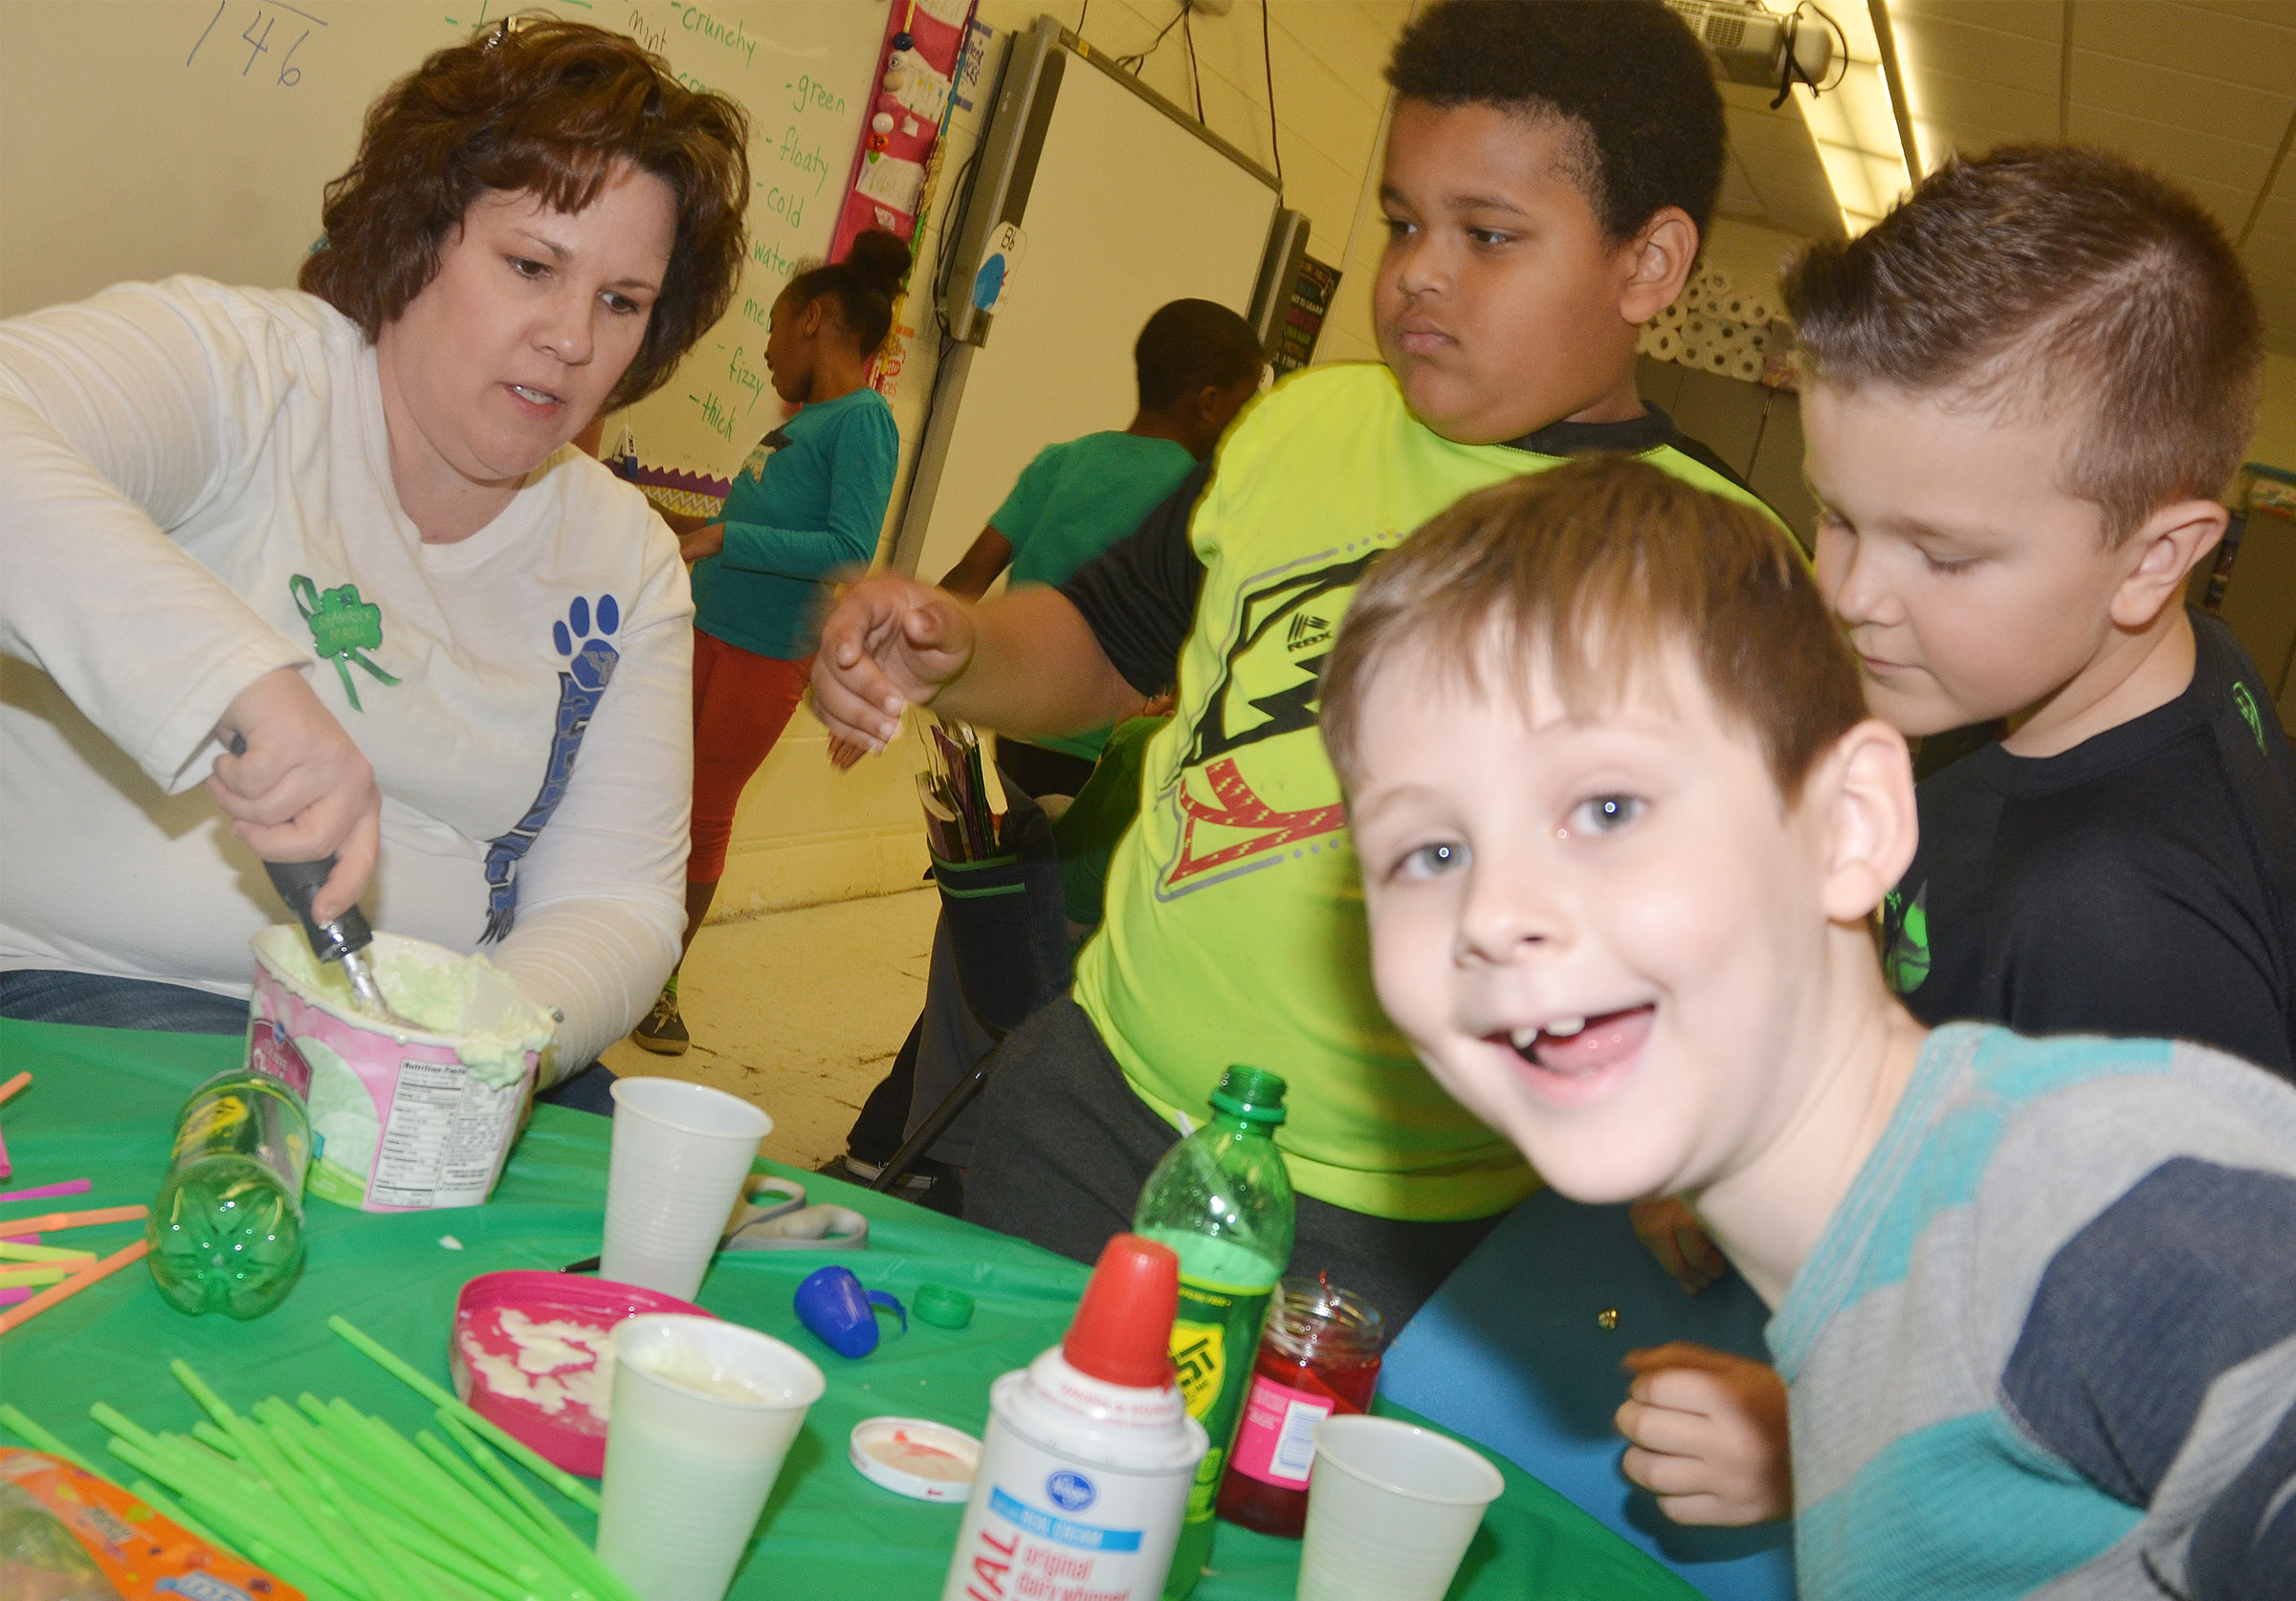 CES second-grader Ryan Tungate smiles as he waits to make his leprechaun float. At left, teacher Tracey Rinehart helps Jayden Moore and Cayton Lawhorn make their floats.